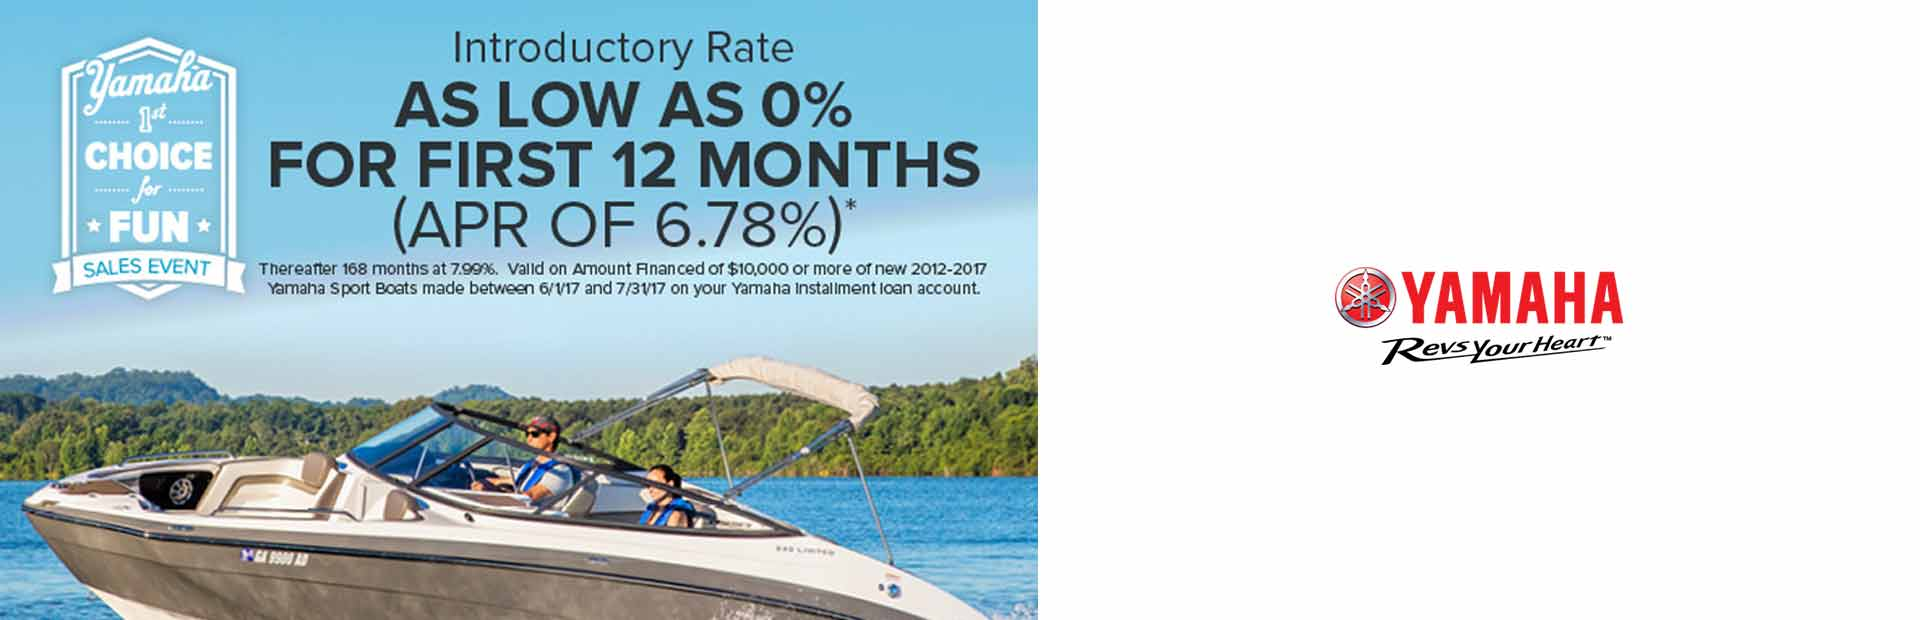 Yamaha: As Low As 0% For First 12 Months (APR Of 6.78%)*